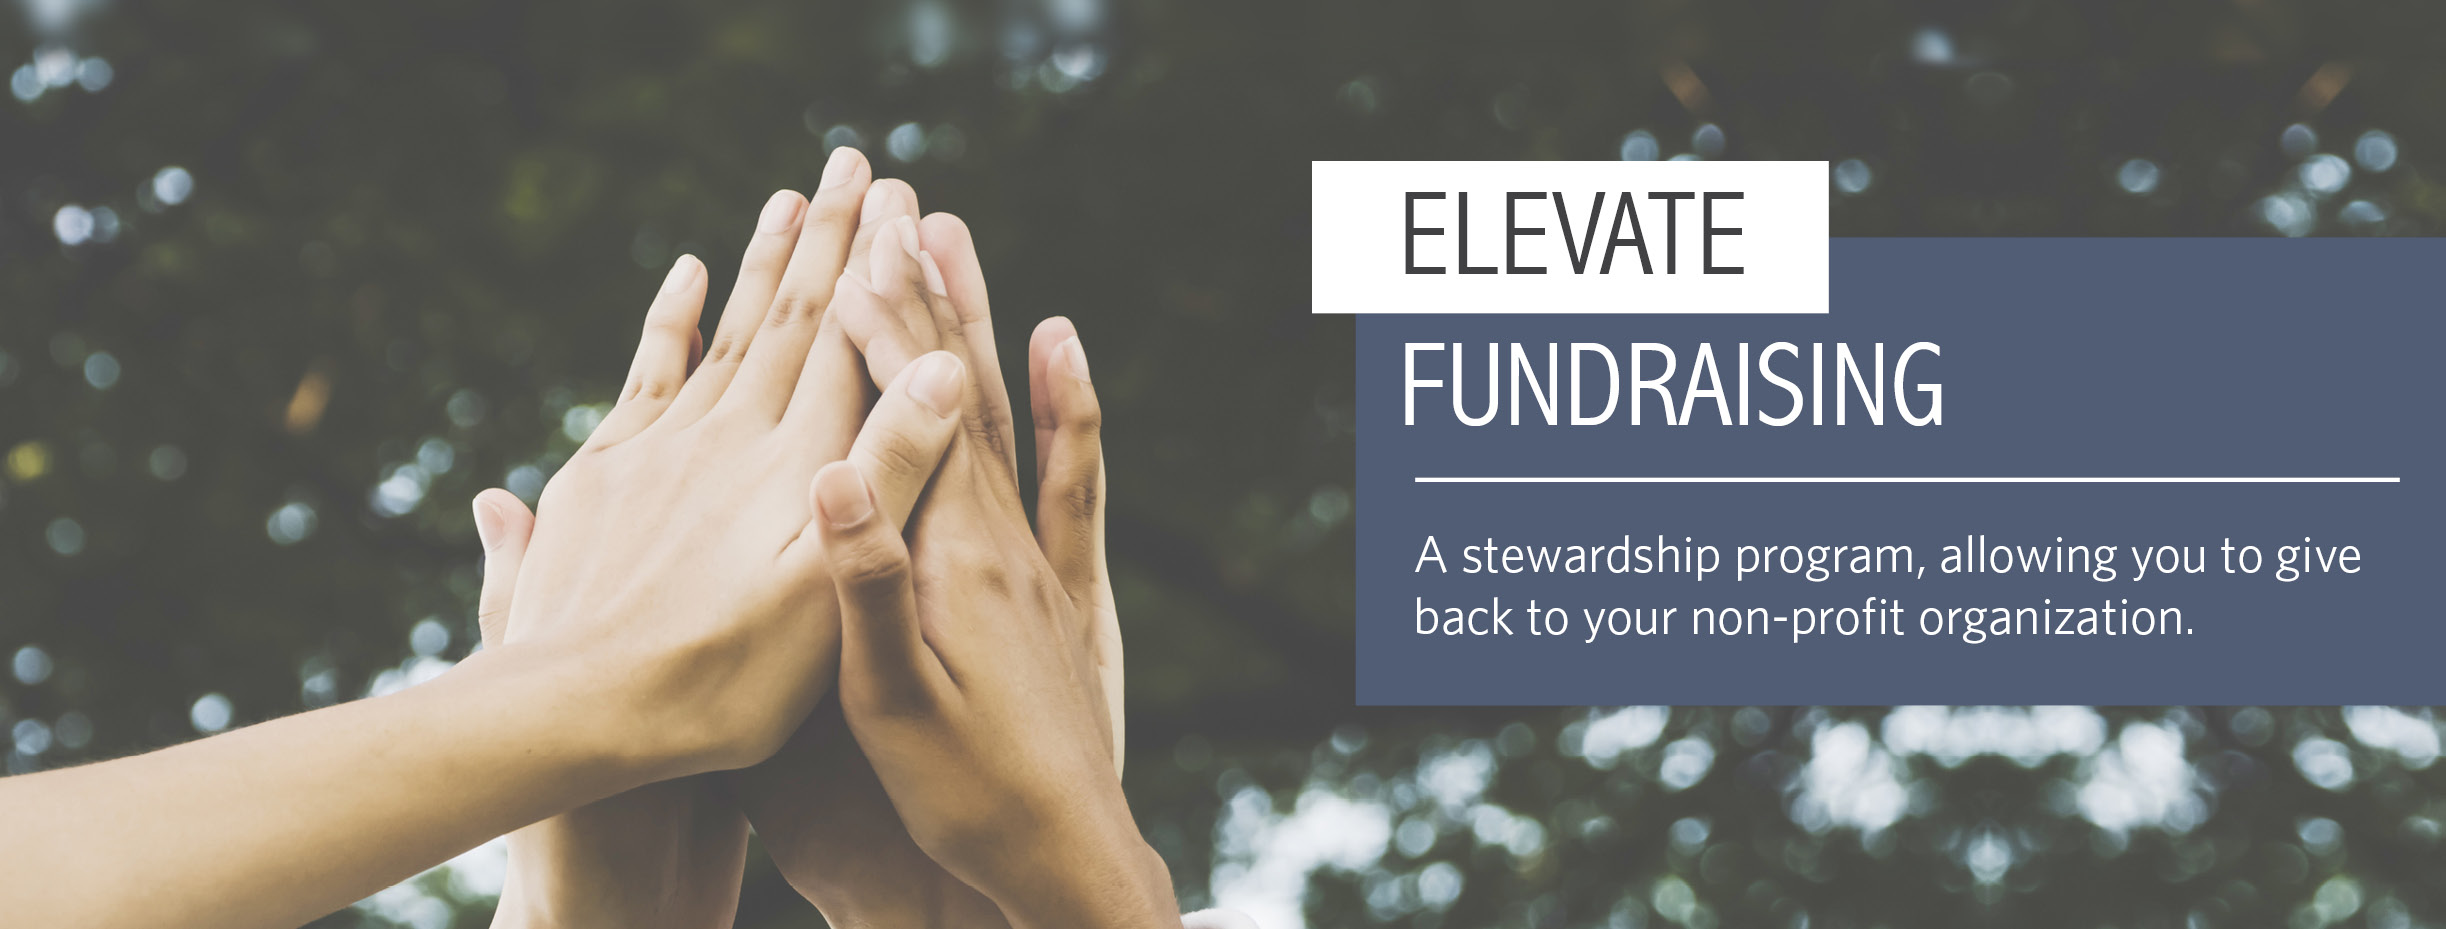 Elevate Fundraising: A stewardship program, allowing you to give back to your non-profit organization.